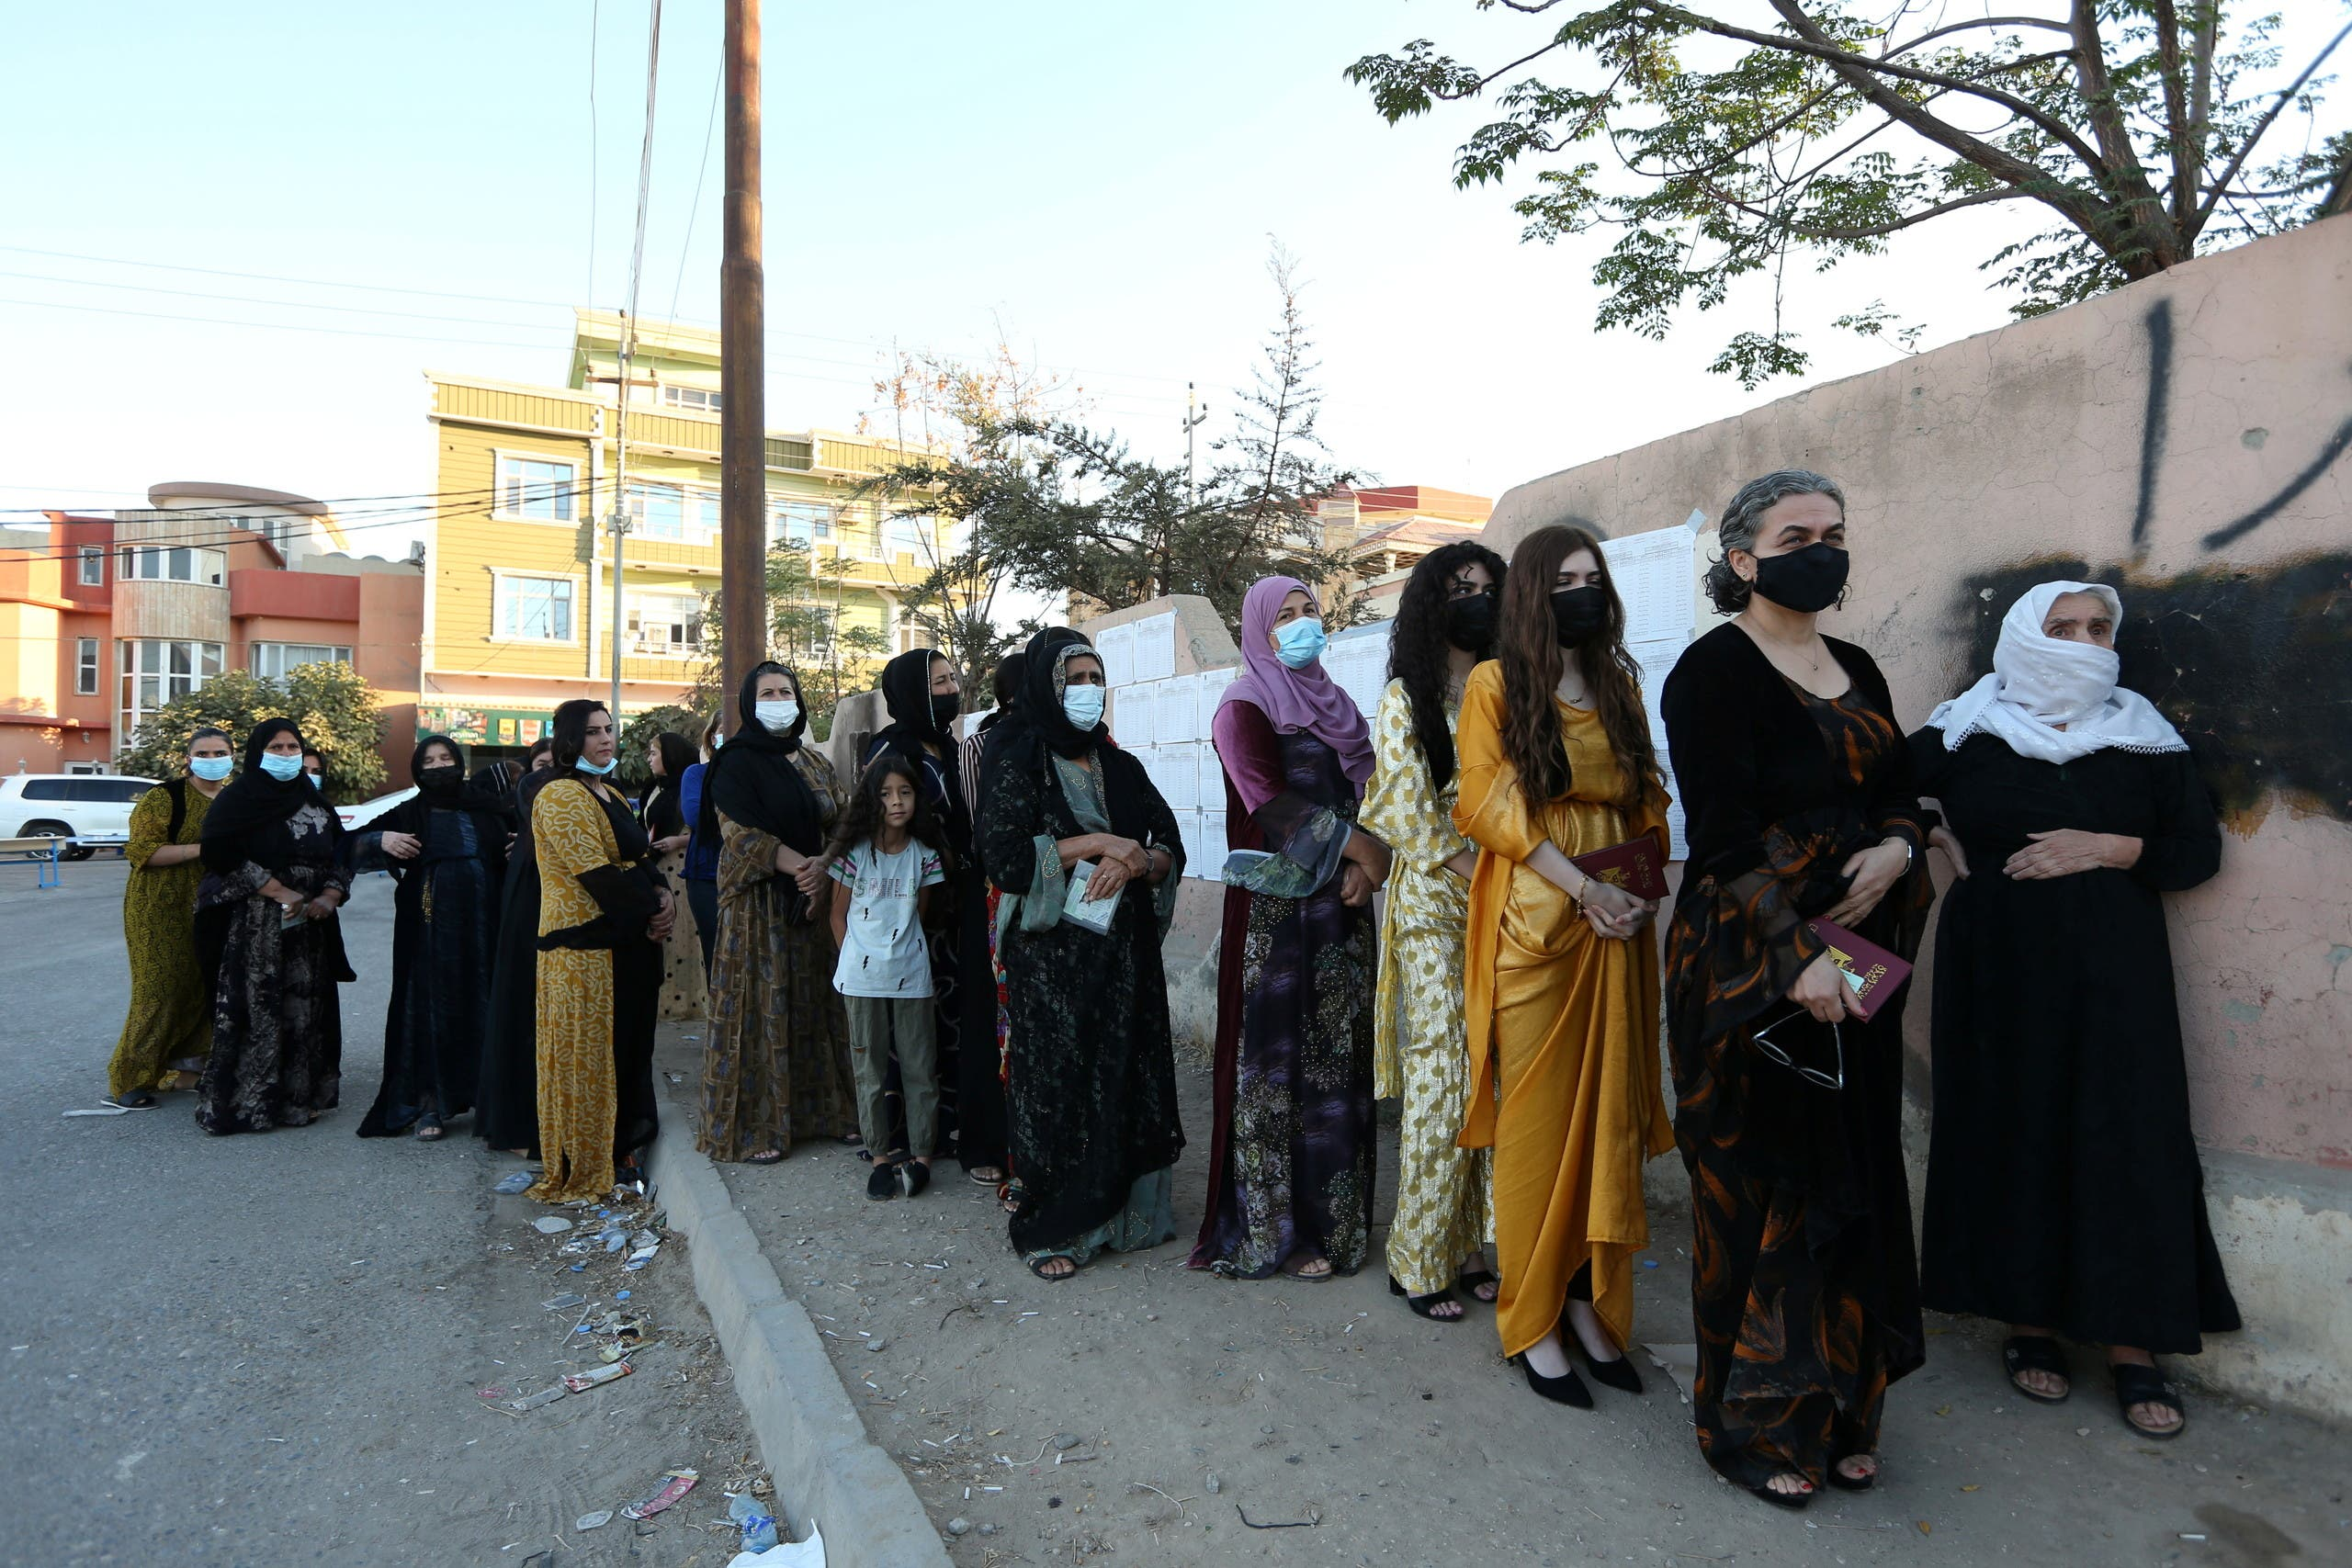 Voters stand in line at a polling station in Duhok, Iraq, October 10, 2021. (Reuters)